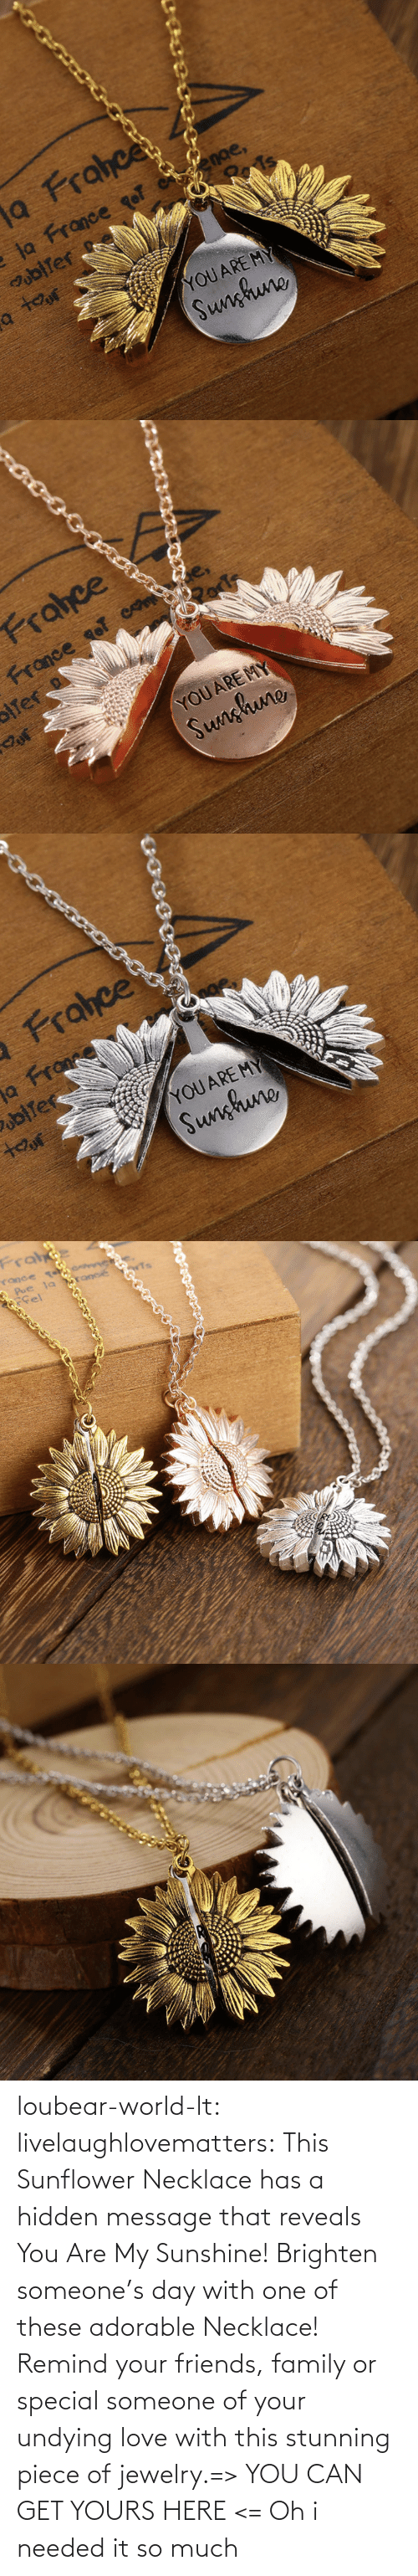 sunshine: loubear-world-lt:  livelaughlovematters:  This Sunflower Necklace has a hidden message that reveals You Are My Sunshine! Brighten someone's day with one of these adorable Necklace! Remind your friends, family or special someone of your undying love with this stunning piece of jewelry.=> YOU CAN GET YOURS HERE <=   Oh i needed it so much